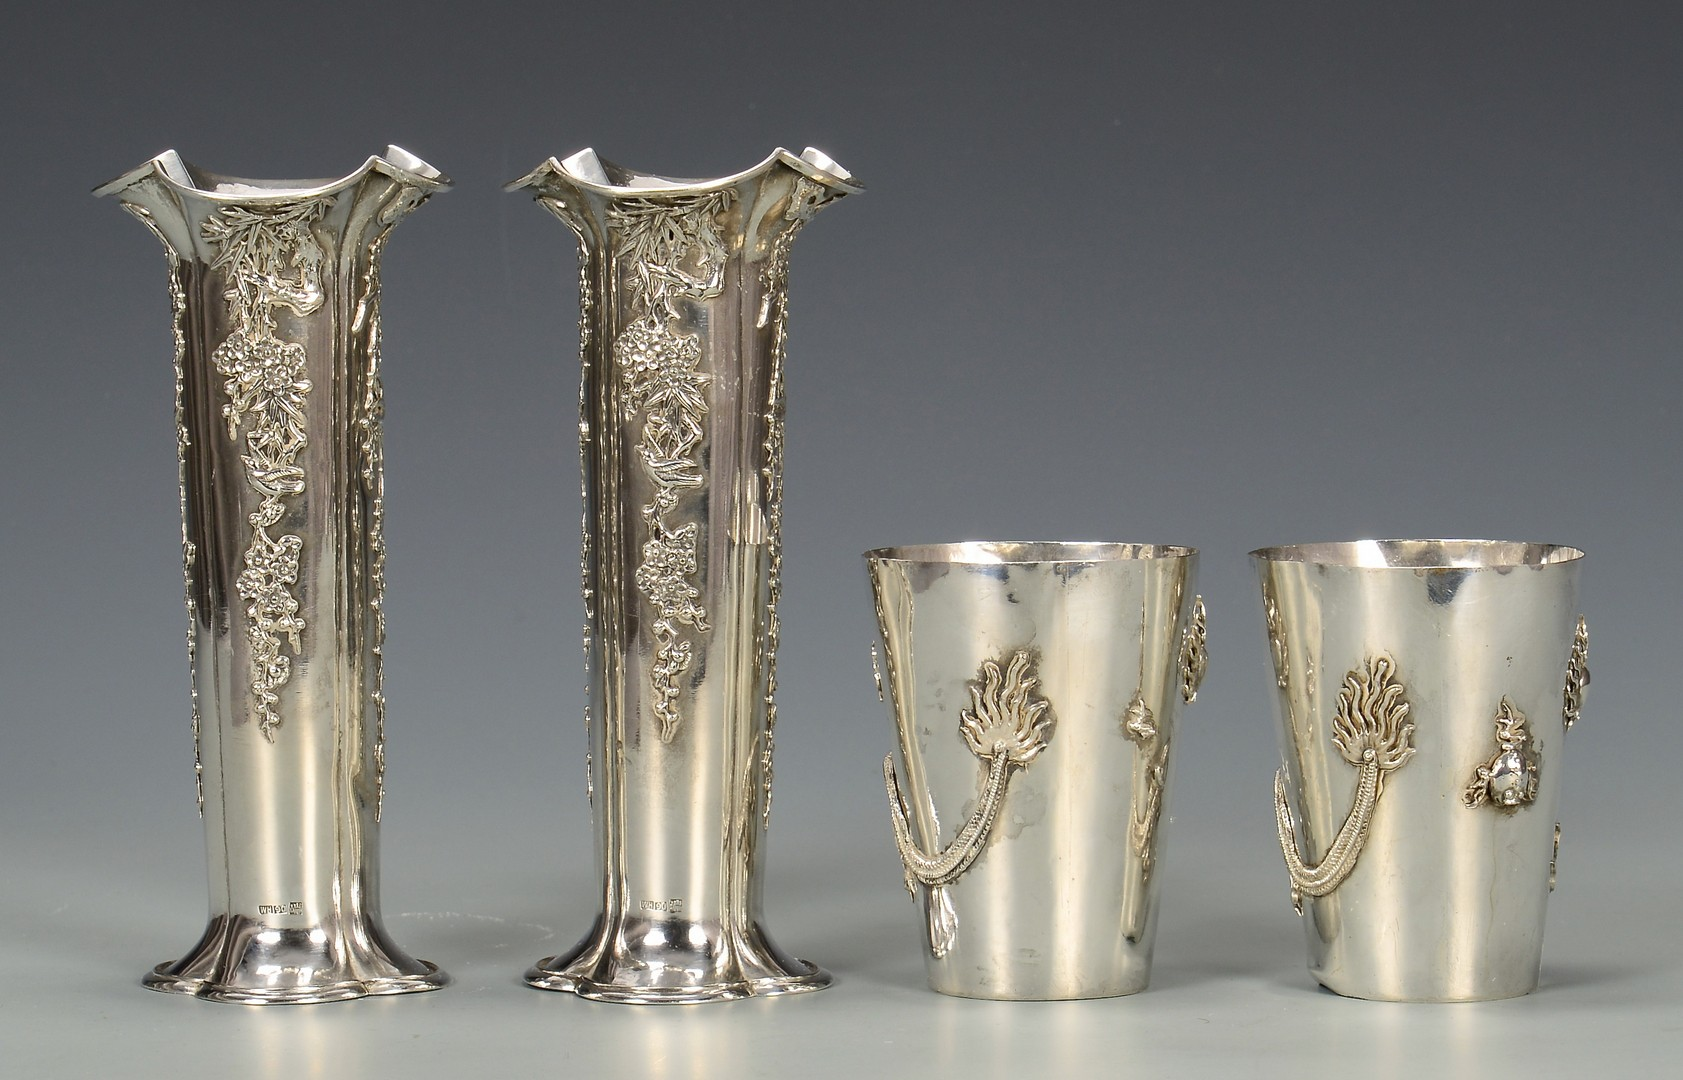 Lot 35: Chinese Export Silver Vases, Cups